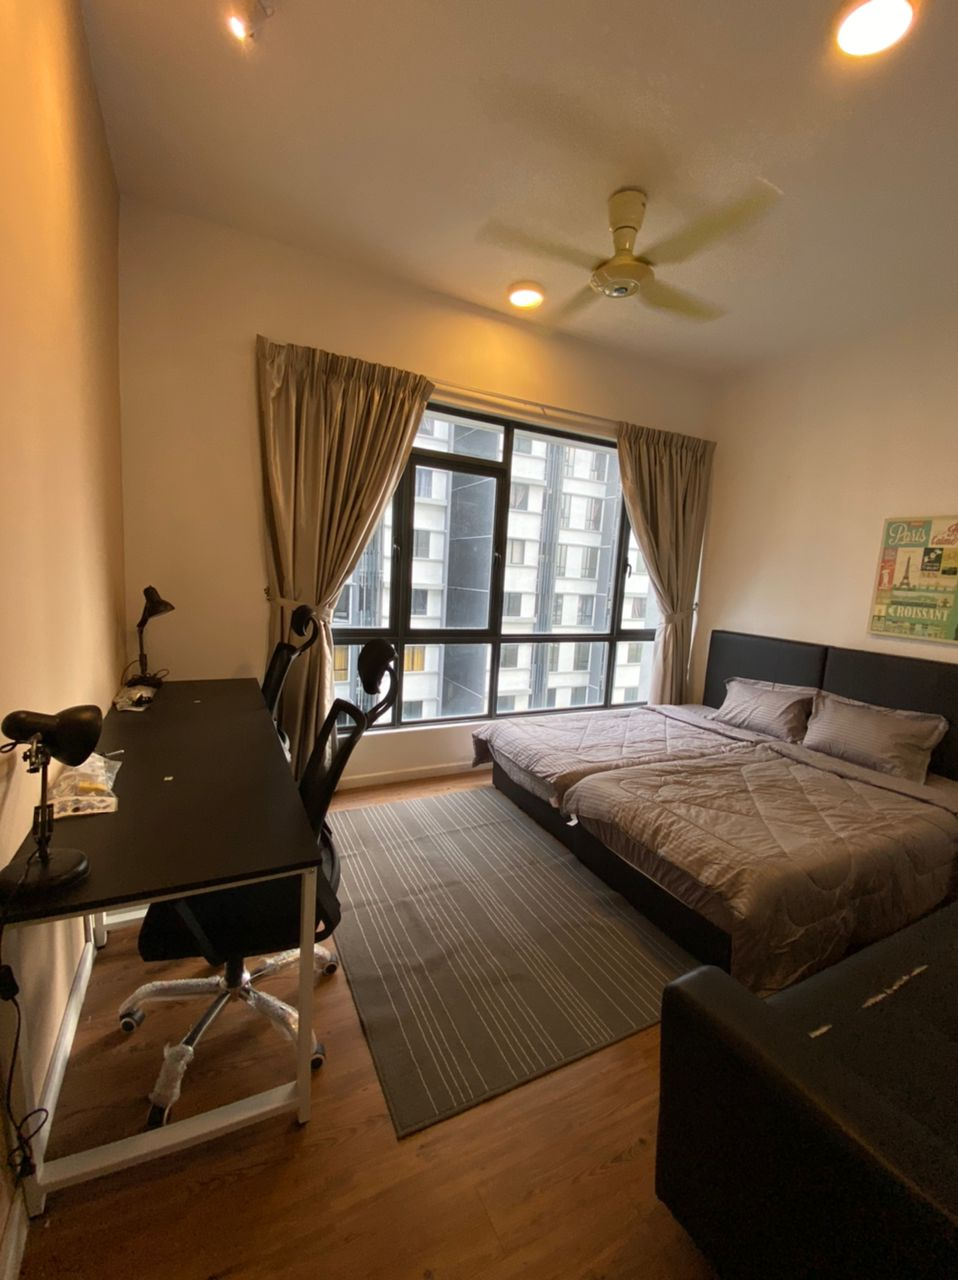 WOW AMAZING 🤩 FEMALE UNIT 🙋♀️ Private Room with Double Beds 😱 & FREE WIFI 📶 @ Utropolis Glenmarie